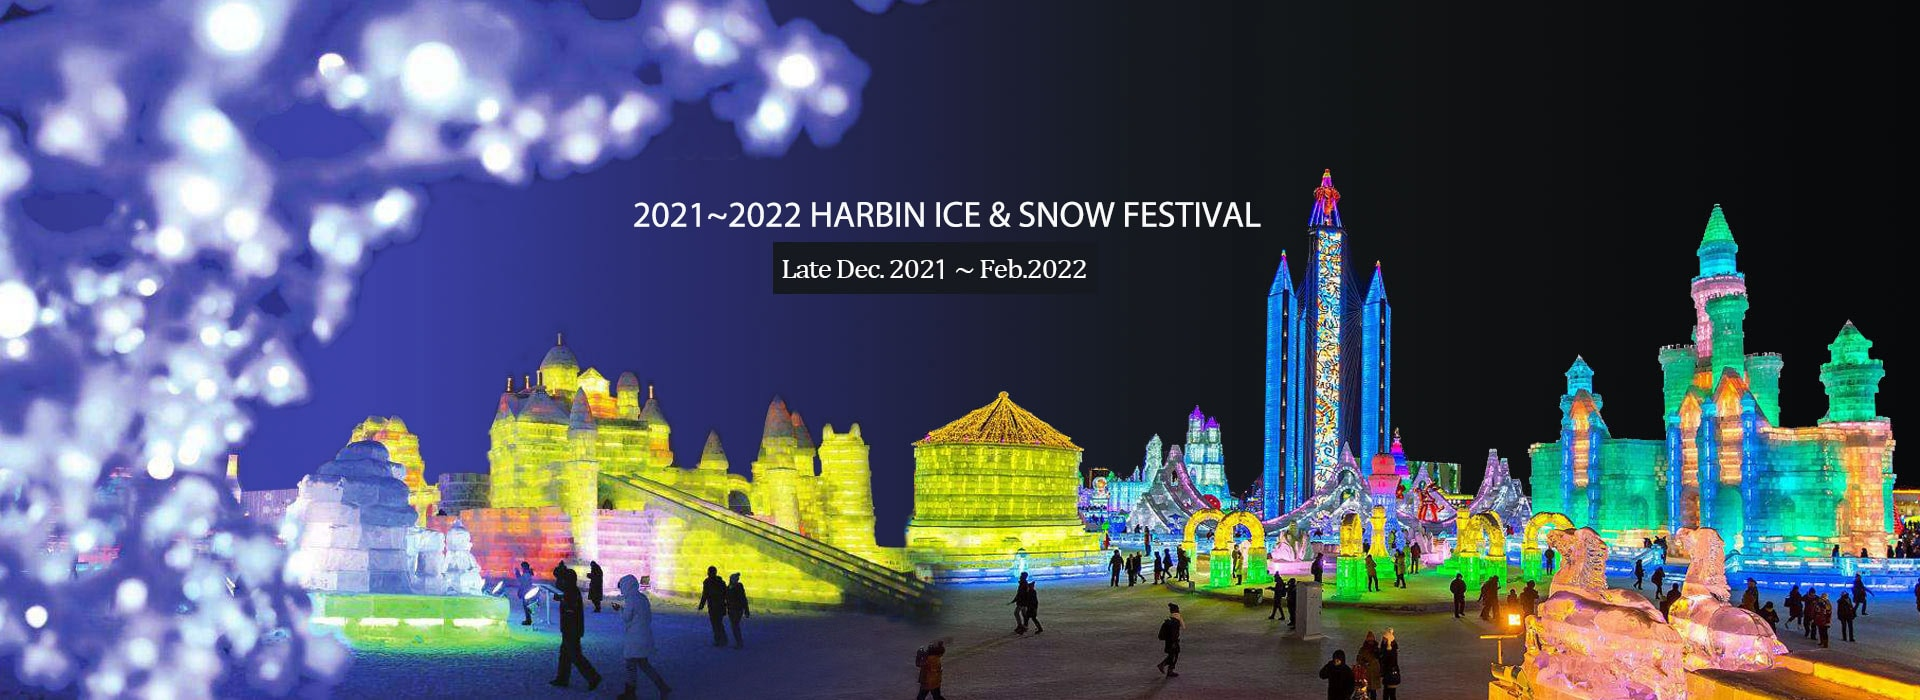 Harbin Ice and Snow Festival for 2018